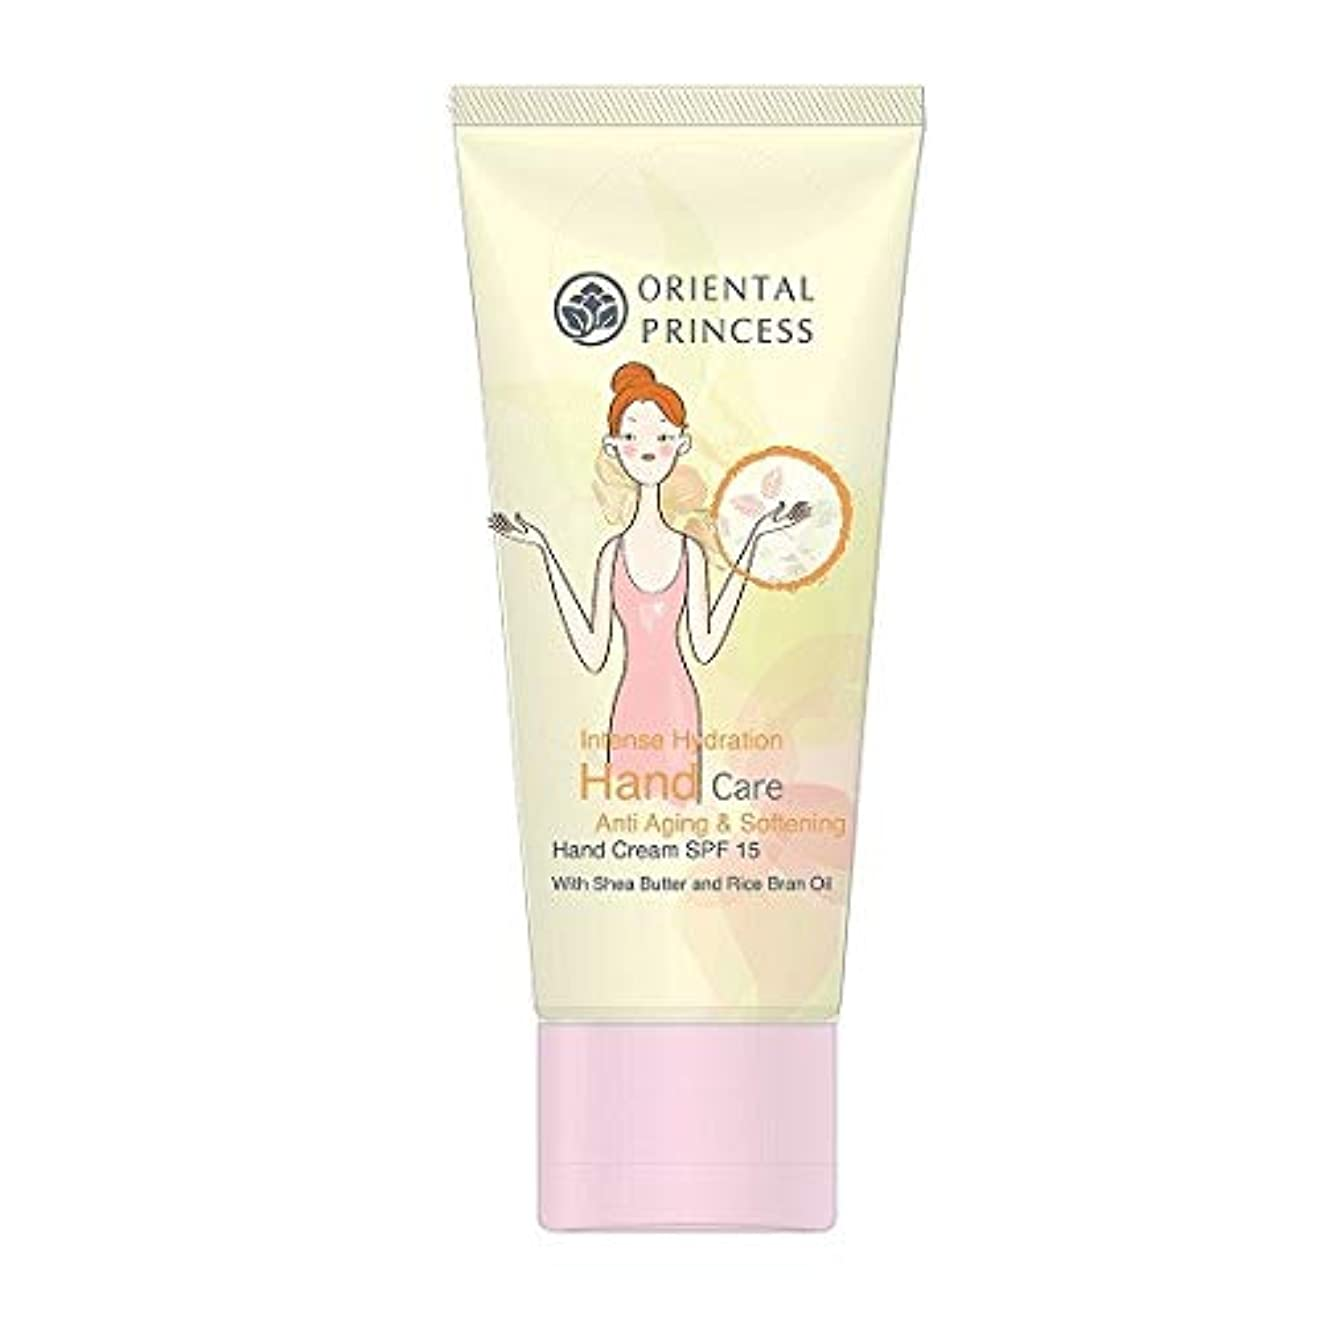 美徳任命滅びるOrient Princess Intense Hydration Hand Care Anti Aging & Softening Hand Cream SPF 15 75g